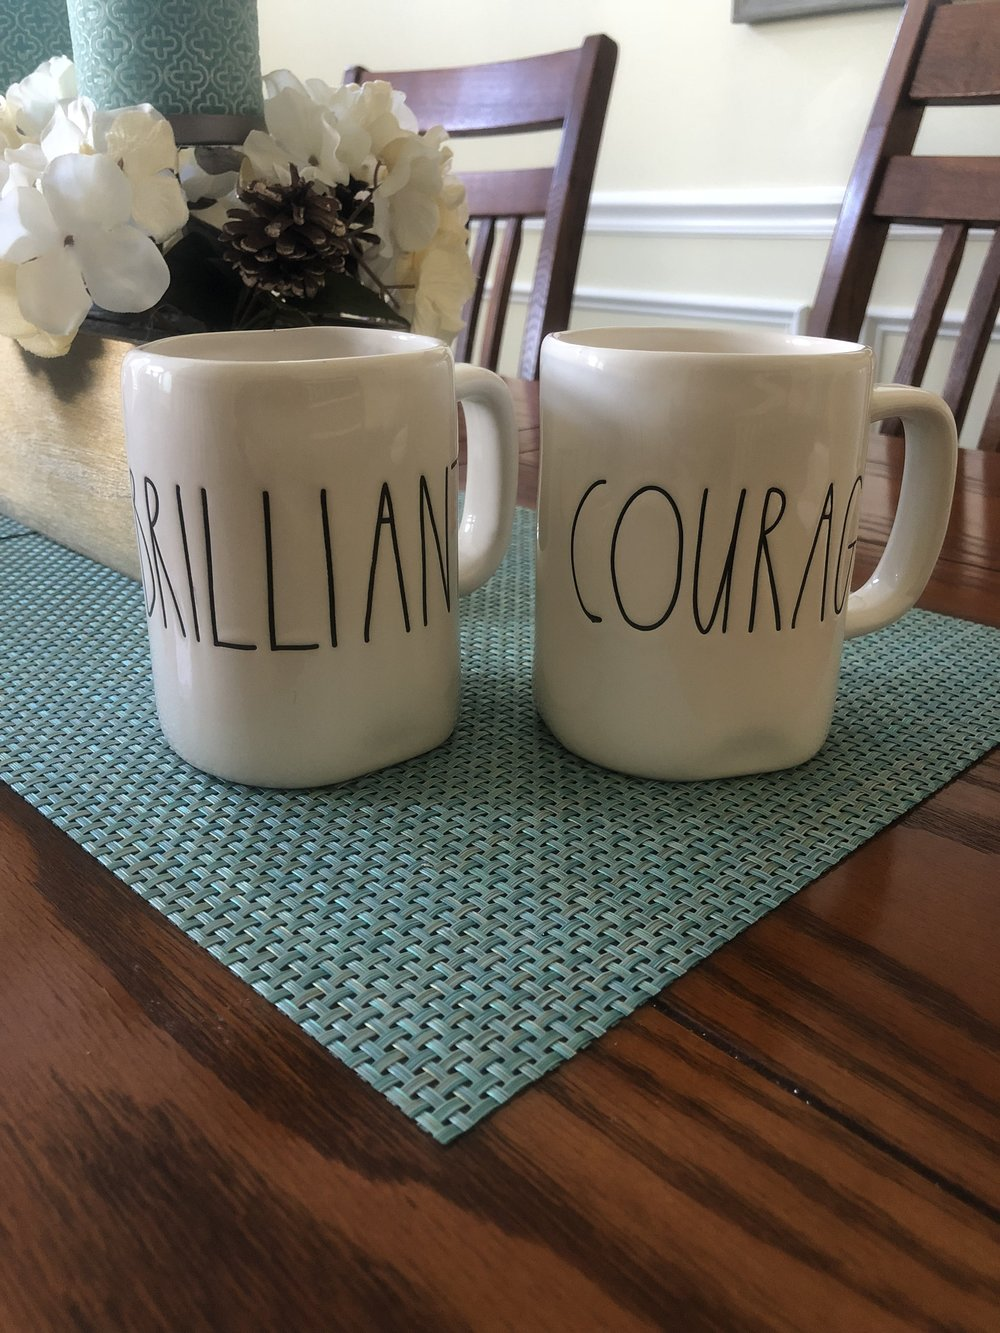 Brilliant + Courage. Giveaway #2 prize!